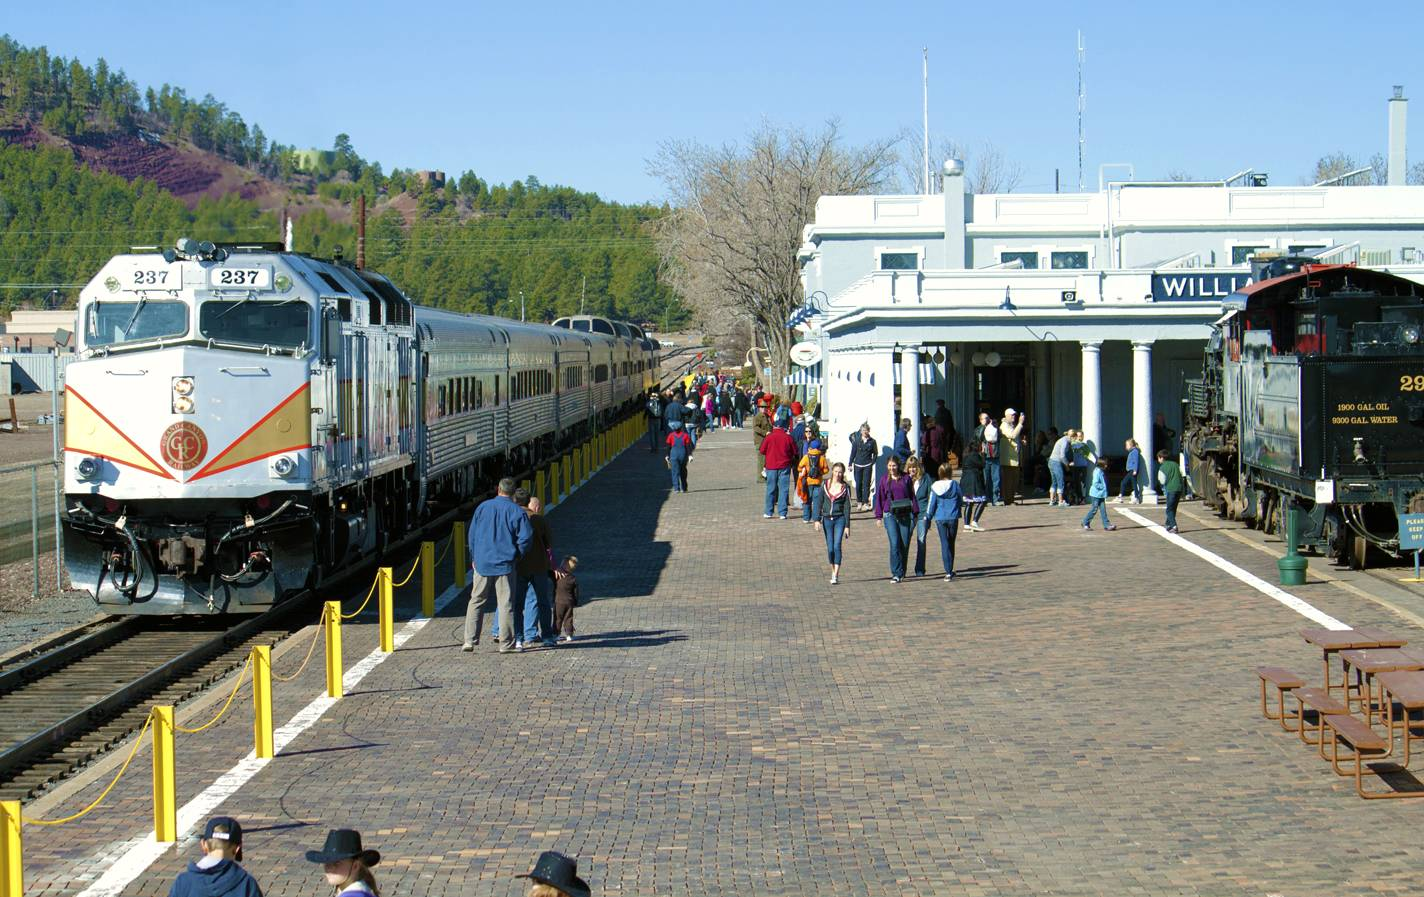 The Grand Canyon Railway gets ready to depart from its depot in Williams, Arizona.